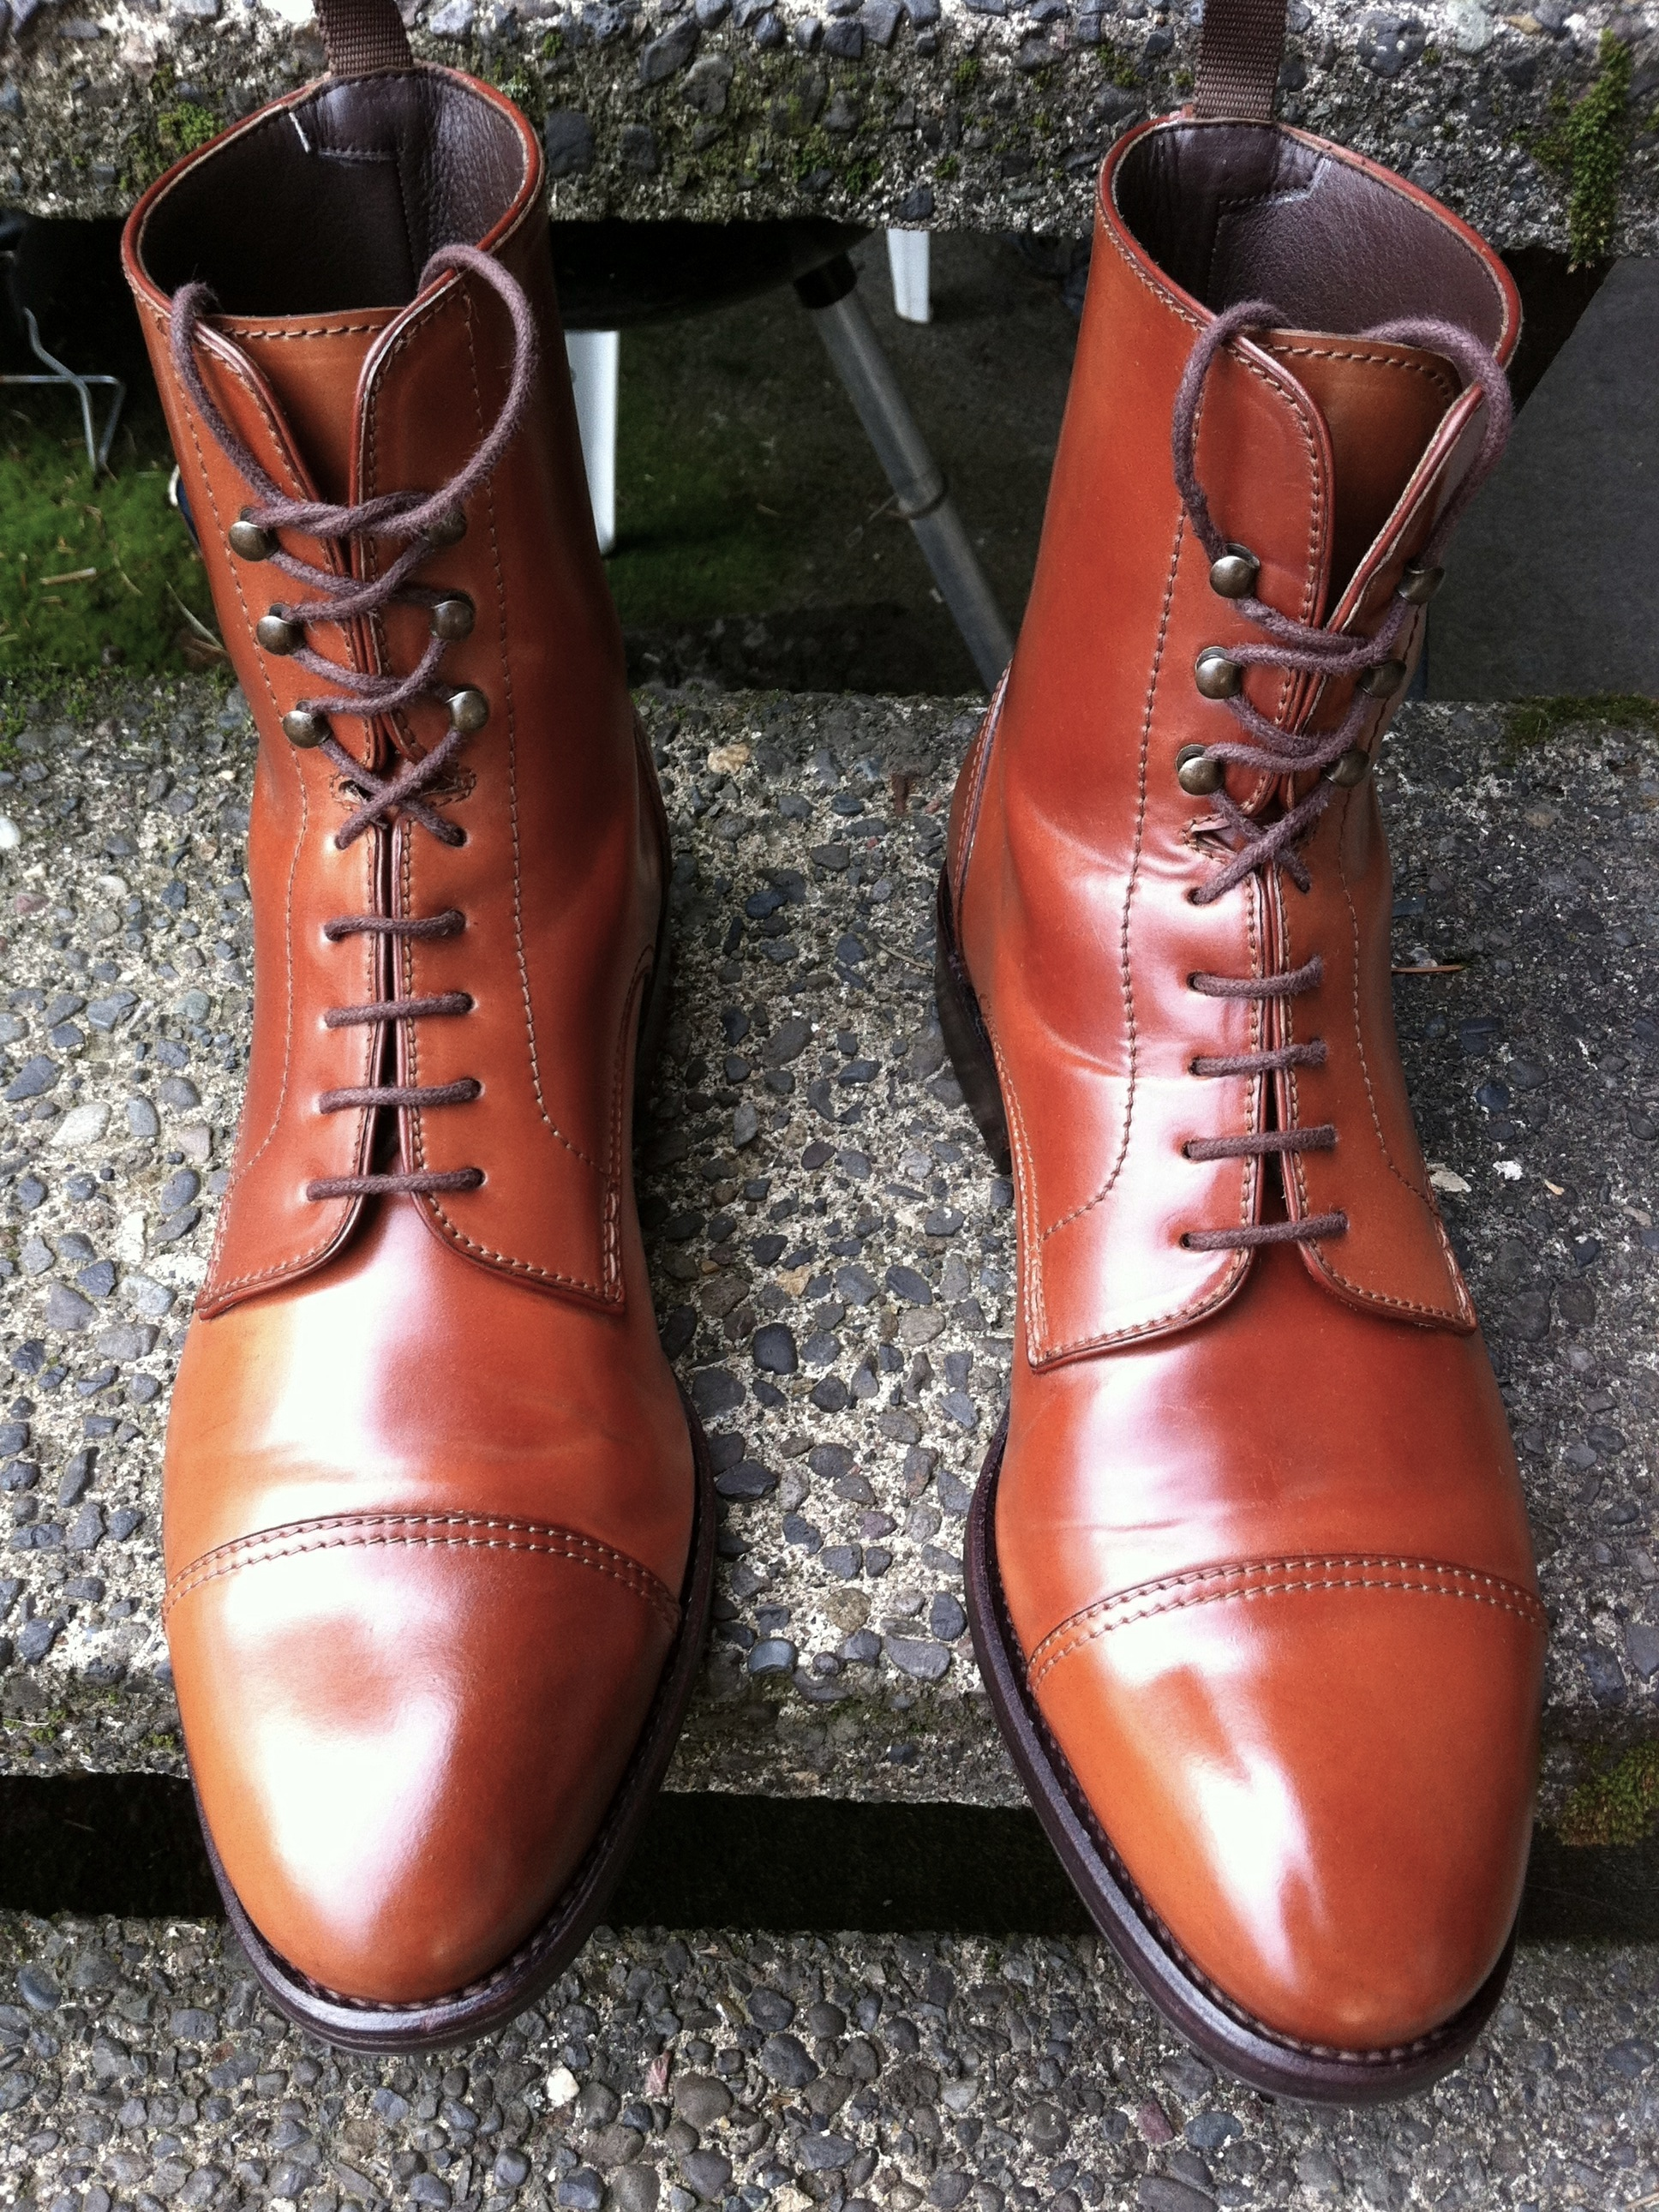 After polishing my shell cordovan boots.